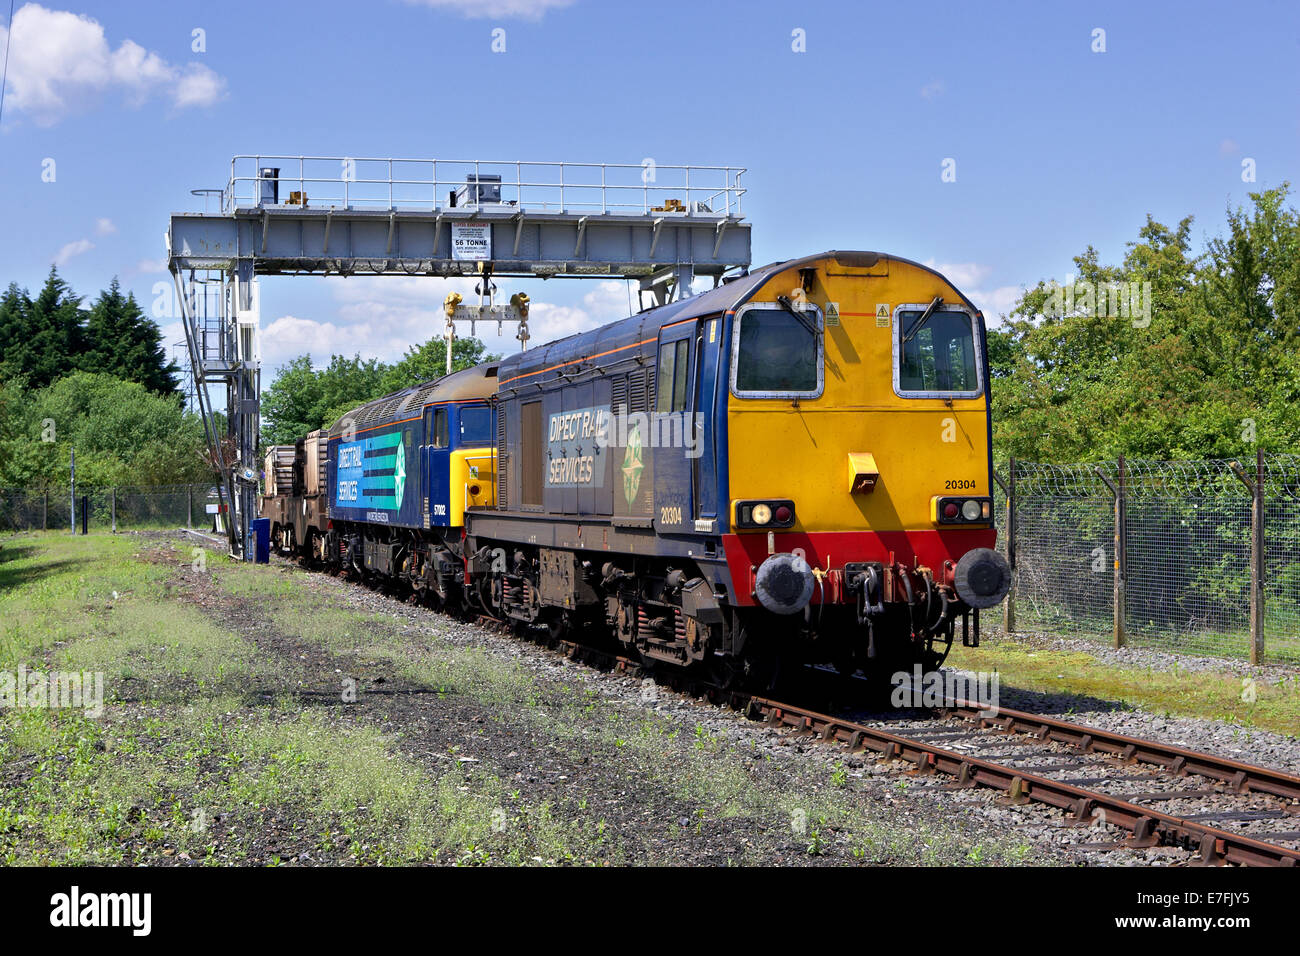 Nuclear flask train stock photos nuclear flask train stock images 20304 57002 await departure berkeley on the sharpness branch where a larger than usual load thecheapjerseys Gallery